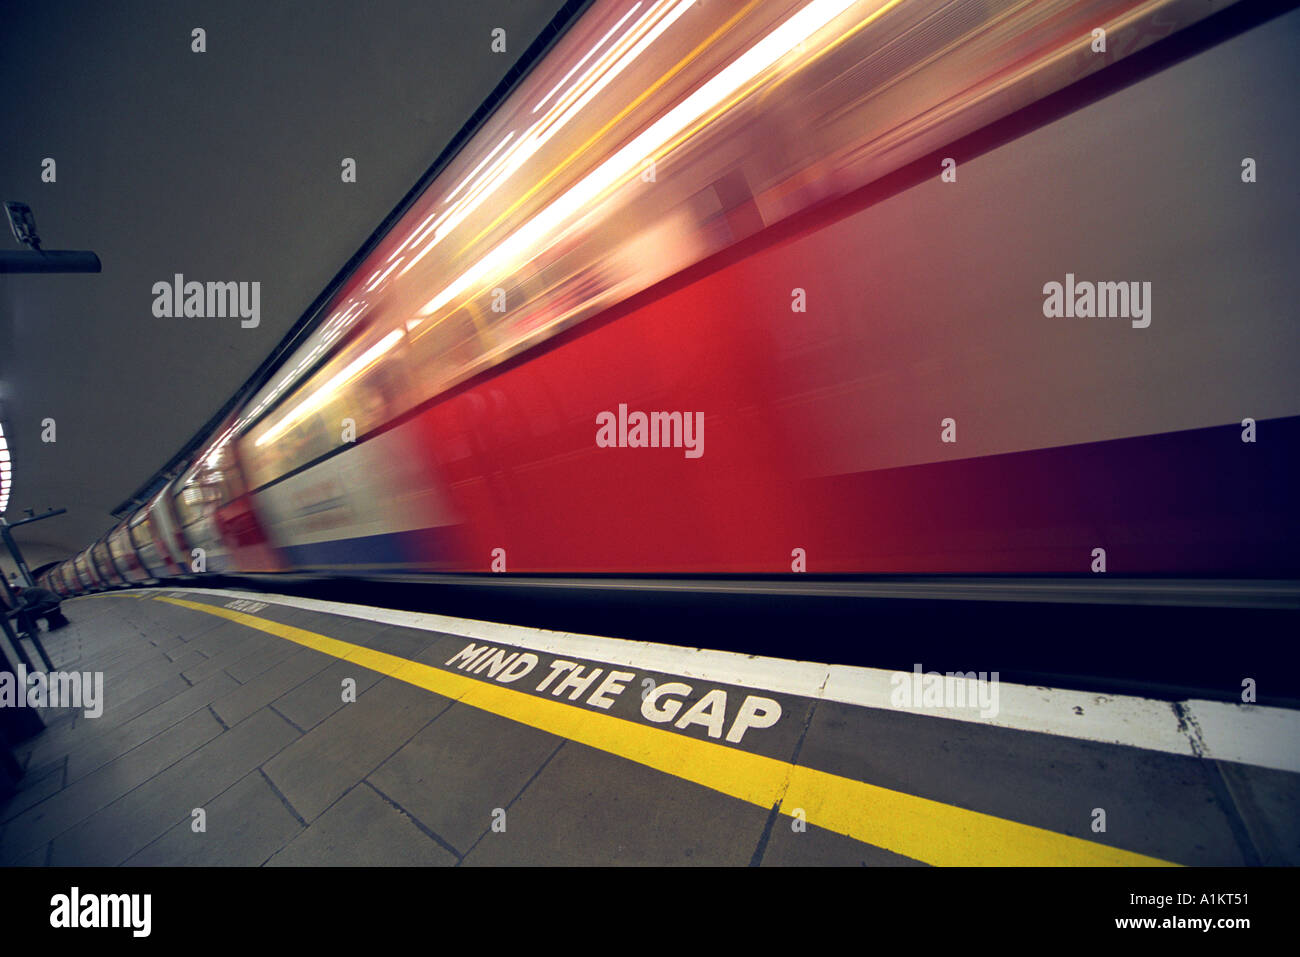 London Underground Platform Britain UK - Stock Image